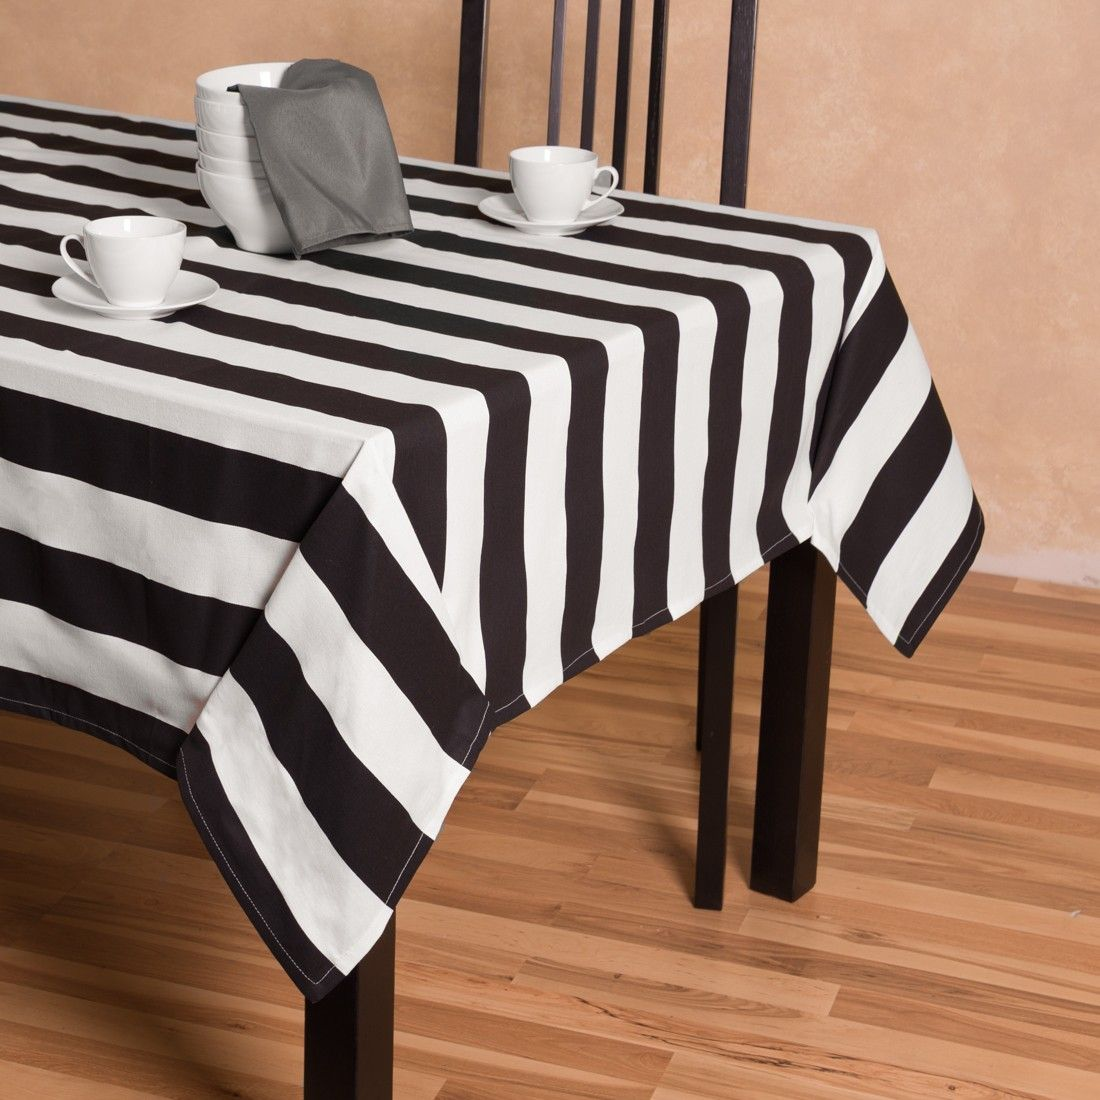 Table Runners At Linentablecloth Our Black White Striped Home Linen Collection Is The Union Of Contemporary Style And Functionality